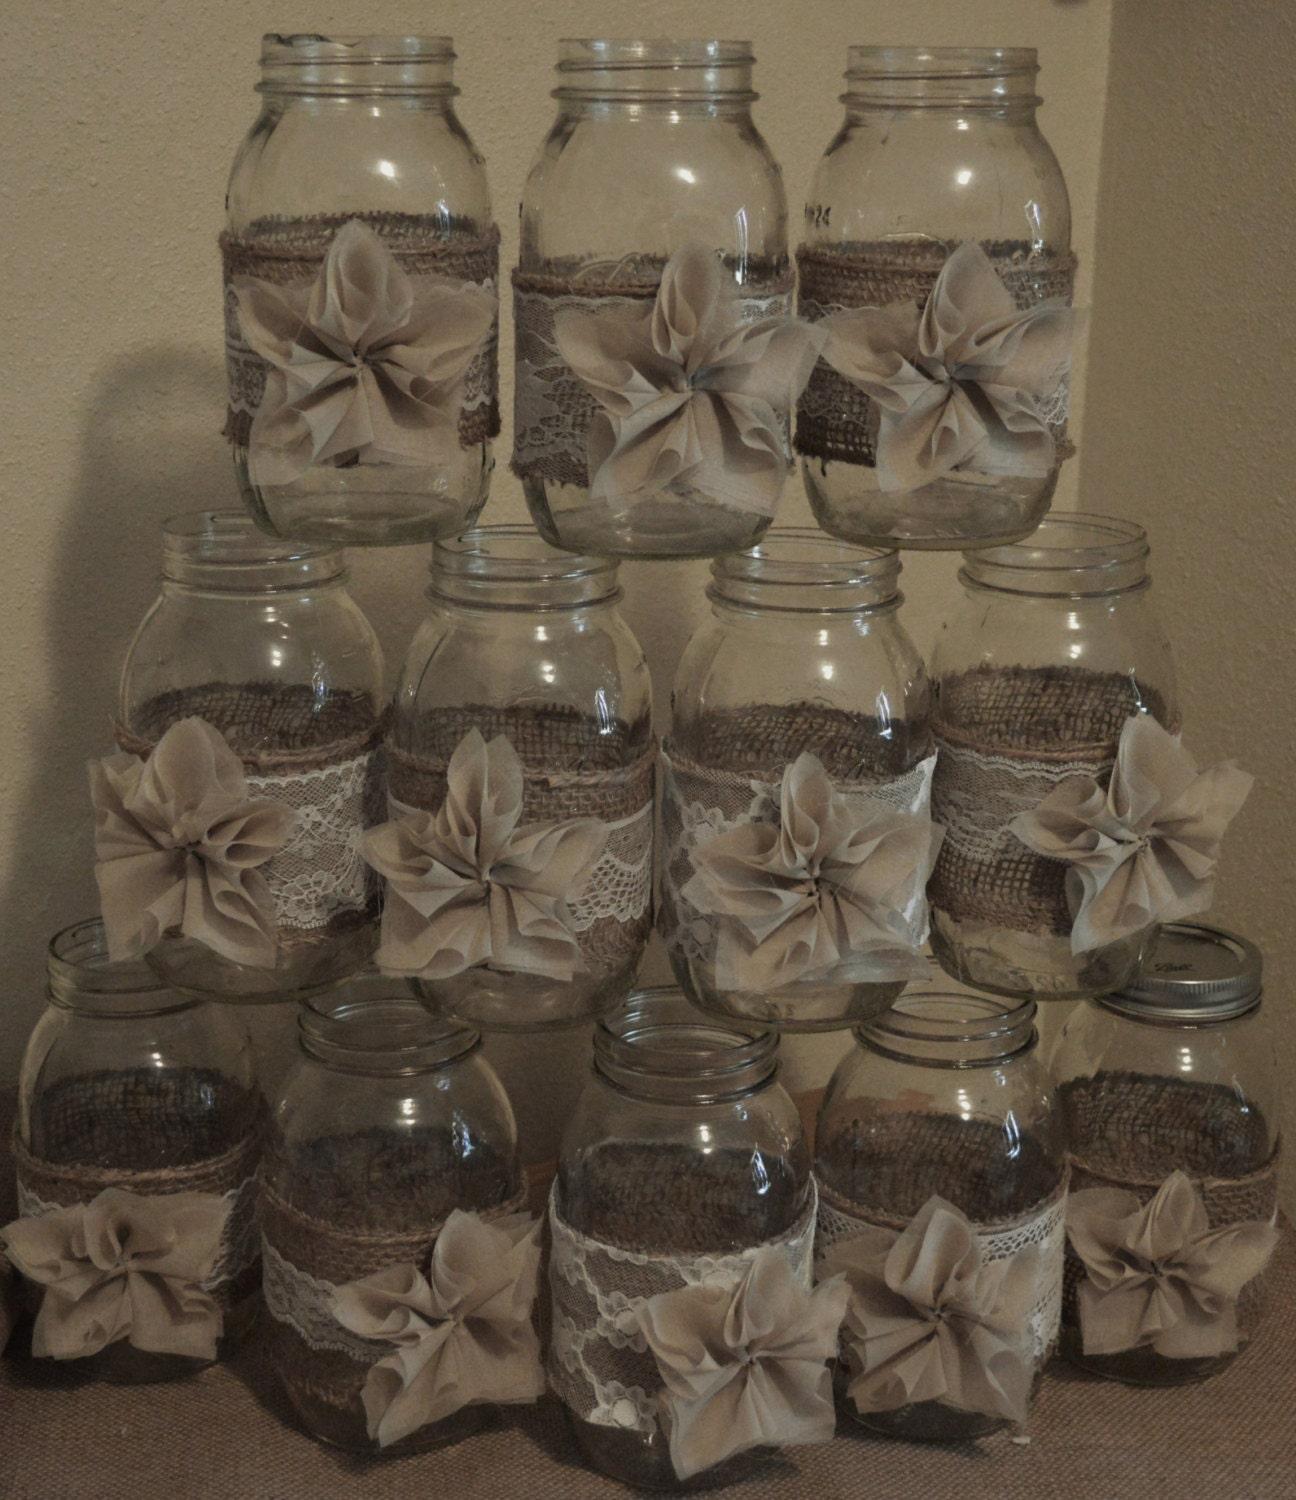 Rustic Jars For Wedding: 12 Rustic Burlap Mason Jar Wedding DecorationsWedding